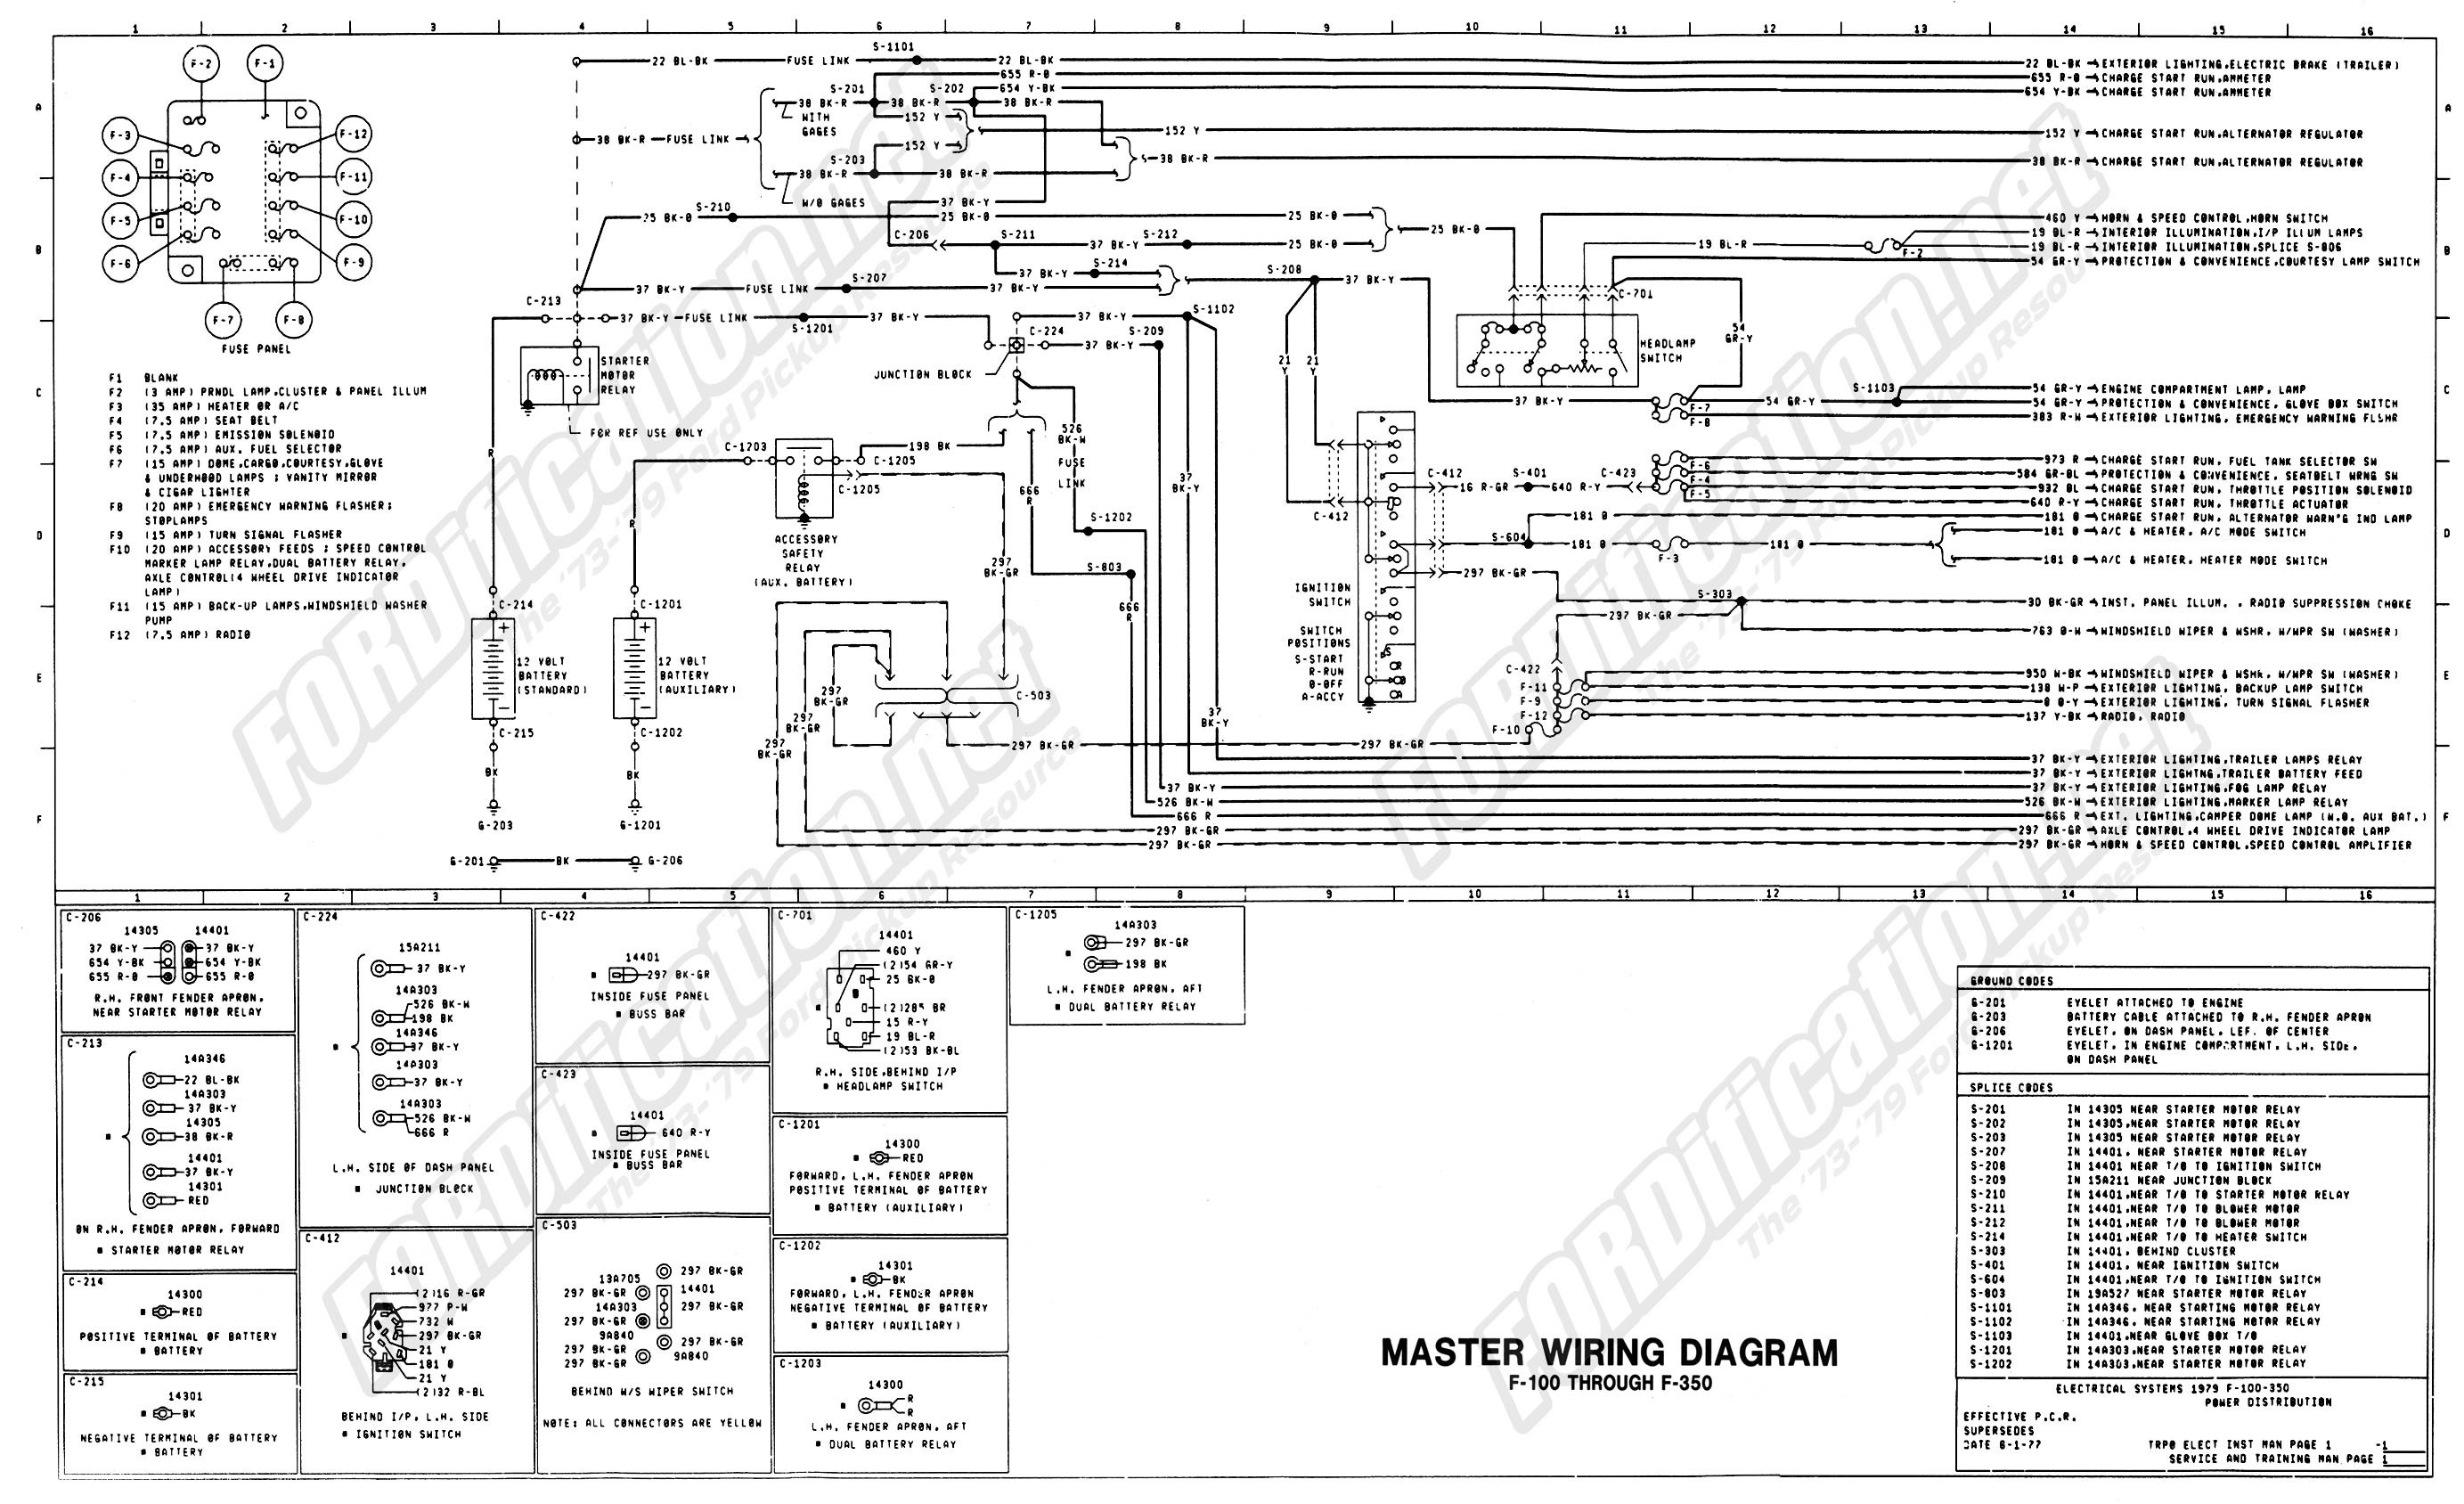 Ford F150 4 6l Engine Diagram Wiring Library 9l 300 1997 6 79 Solenoid Truck Enthusiasts Forums